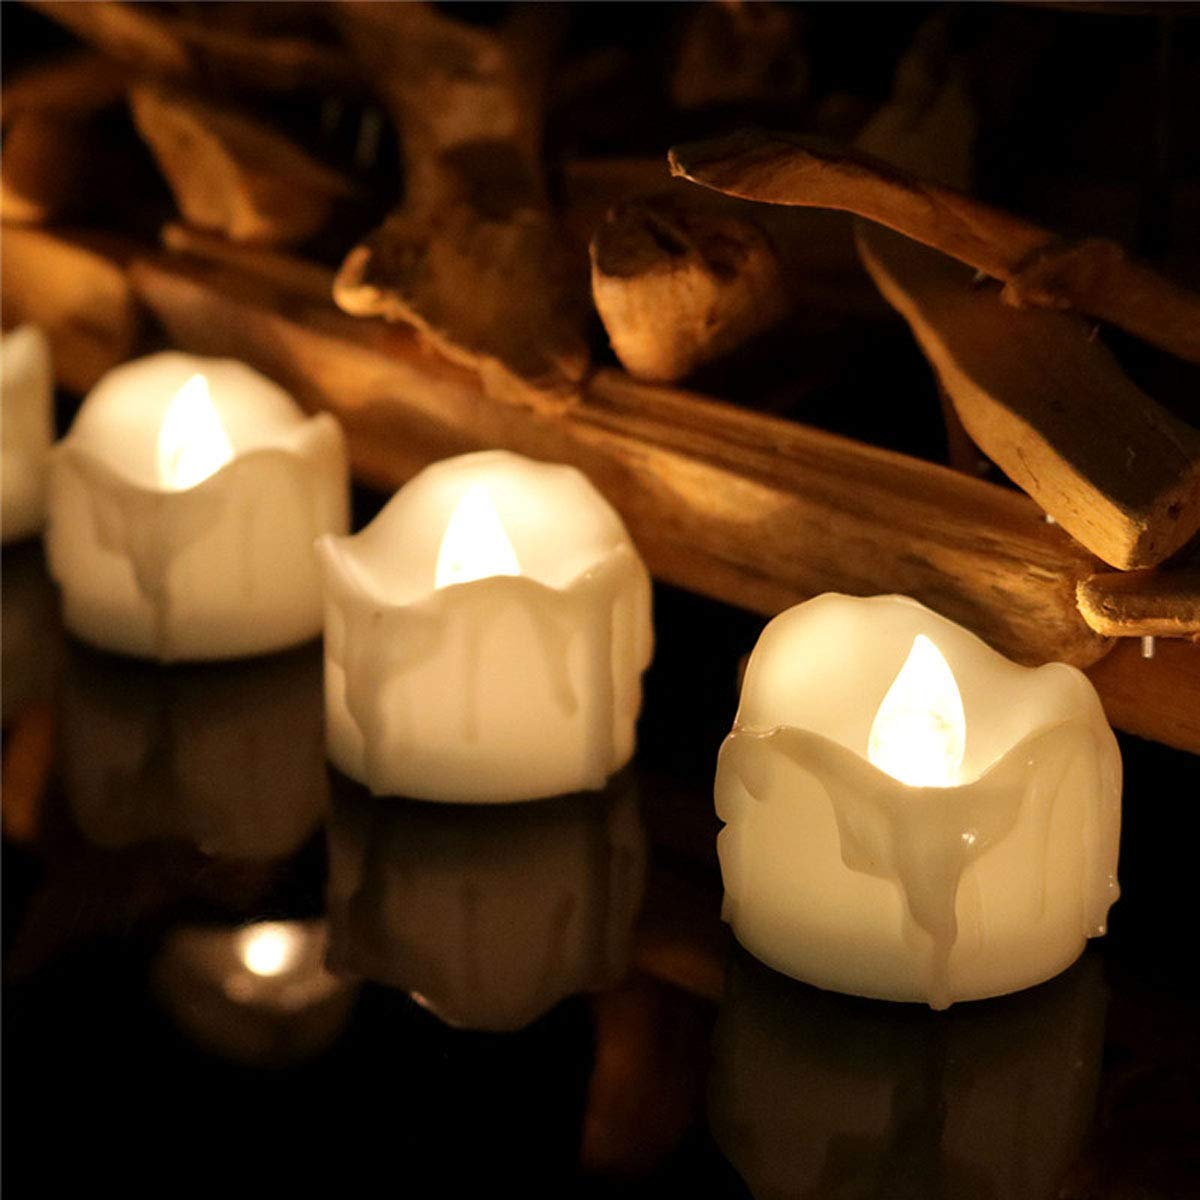 Dellukee Wholesale Flameless Candles Lot with Timer Drop Tear Realistic Bright LED Tealights Candle for Wedding Birthday Party Decoration, 44 X 24 Pack, Electric Fake Candle in Warm White